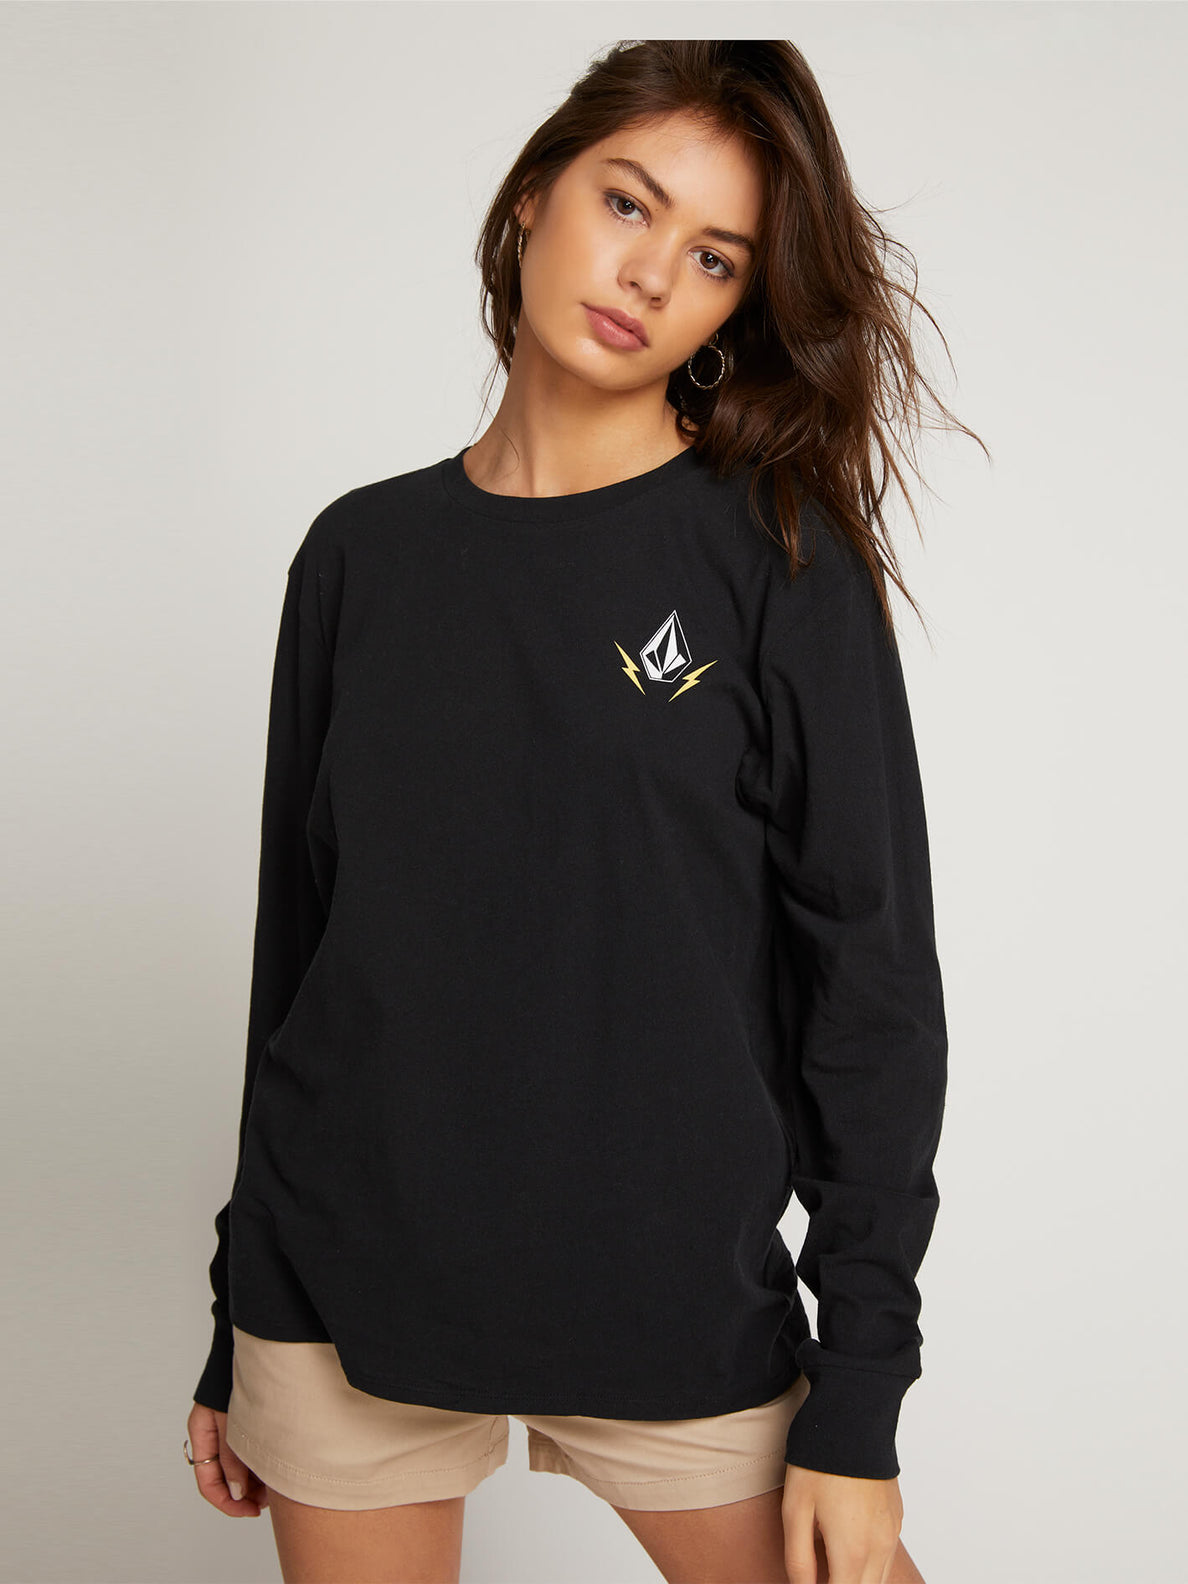 Vlcm 1991 Long Sleeve Tee In Black, Front View